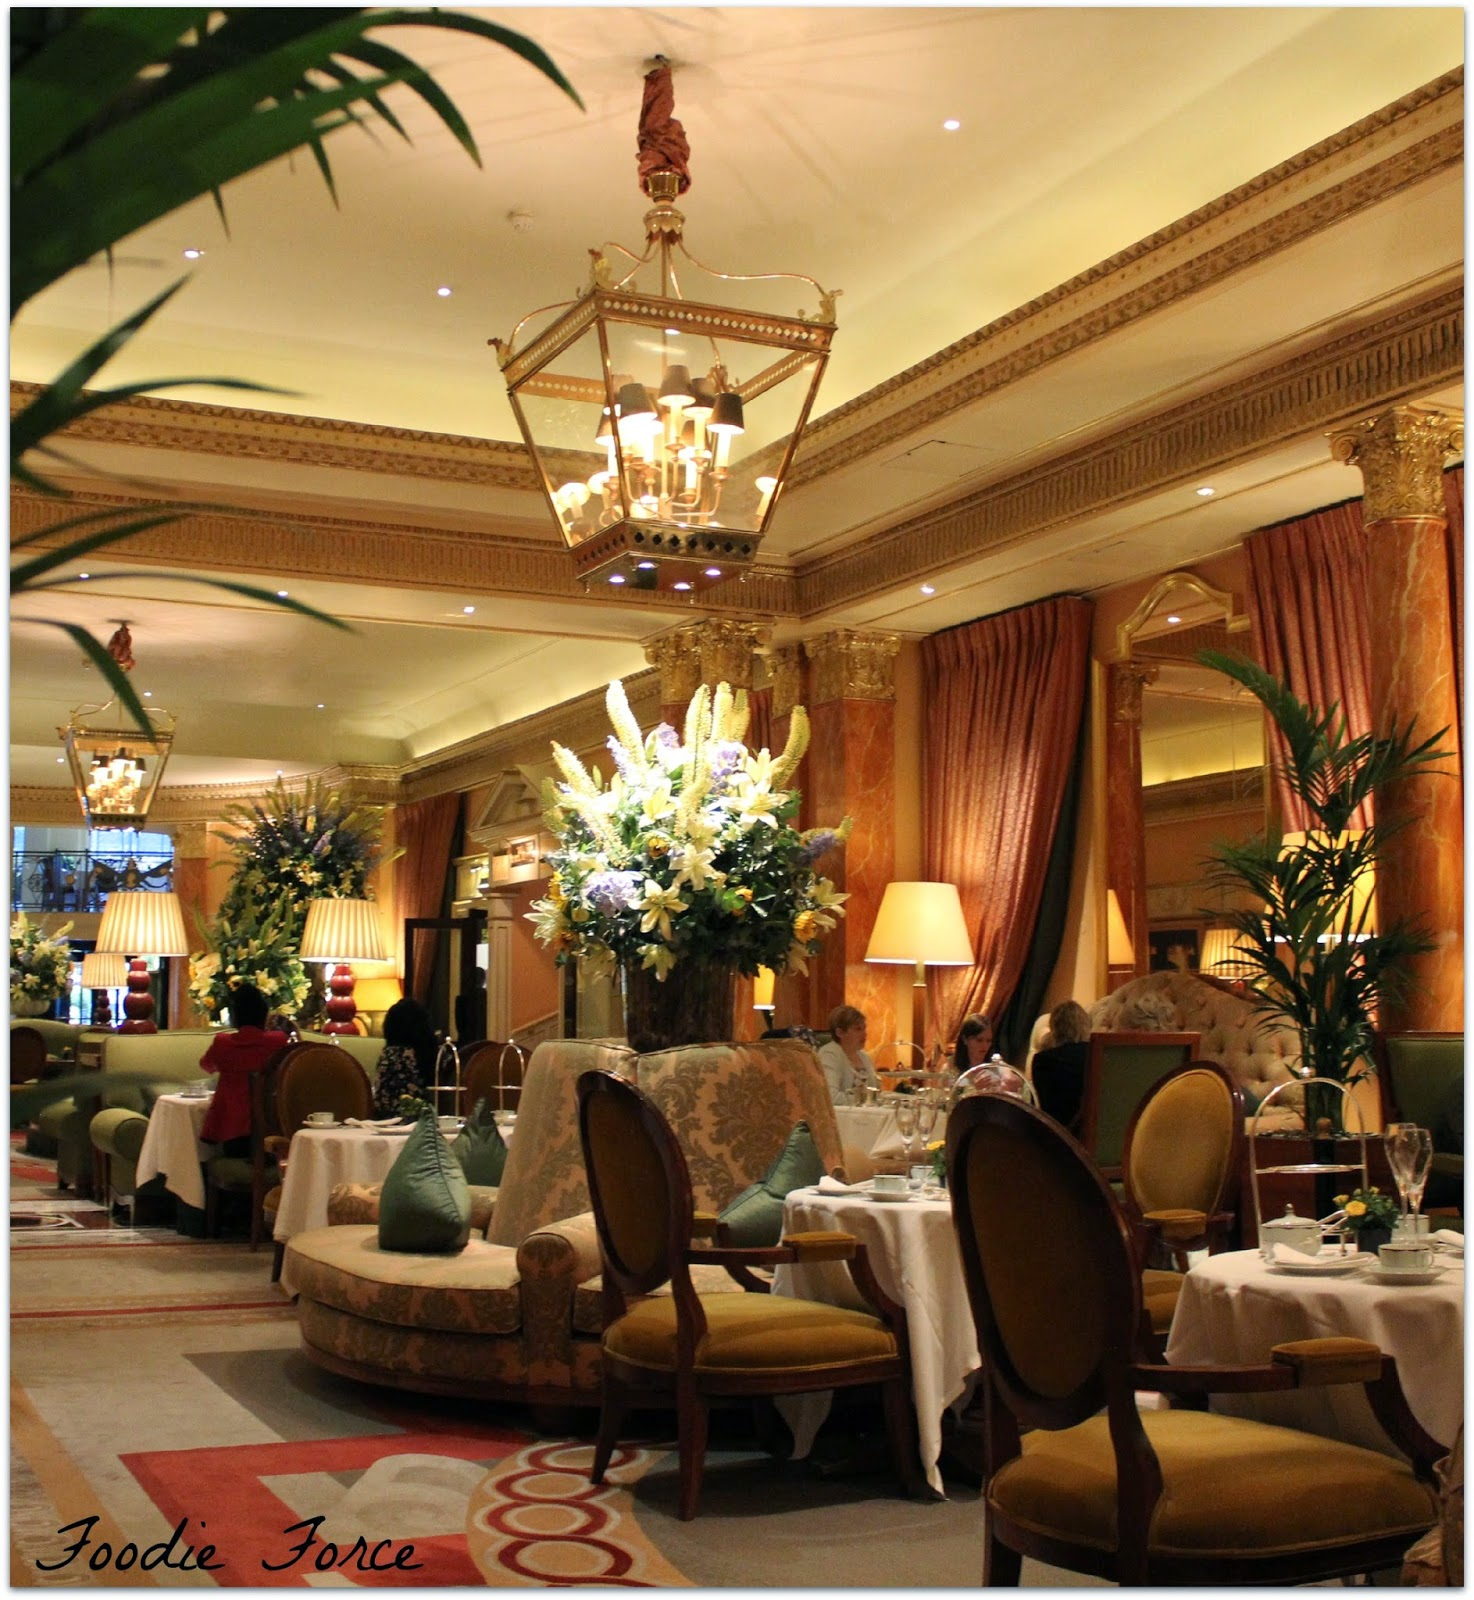 The Dorchester Hotel